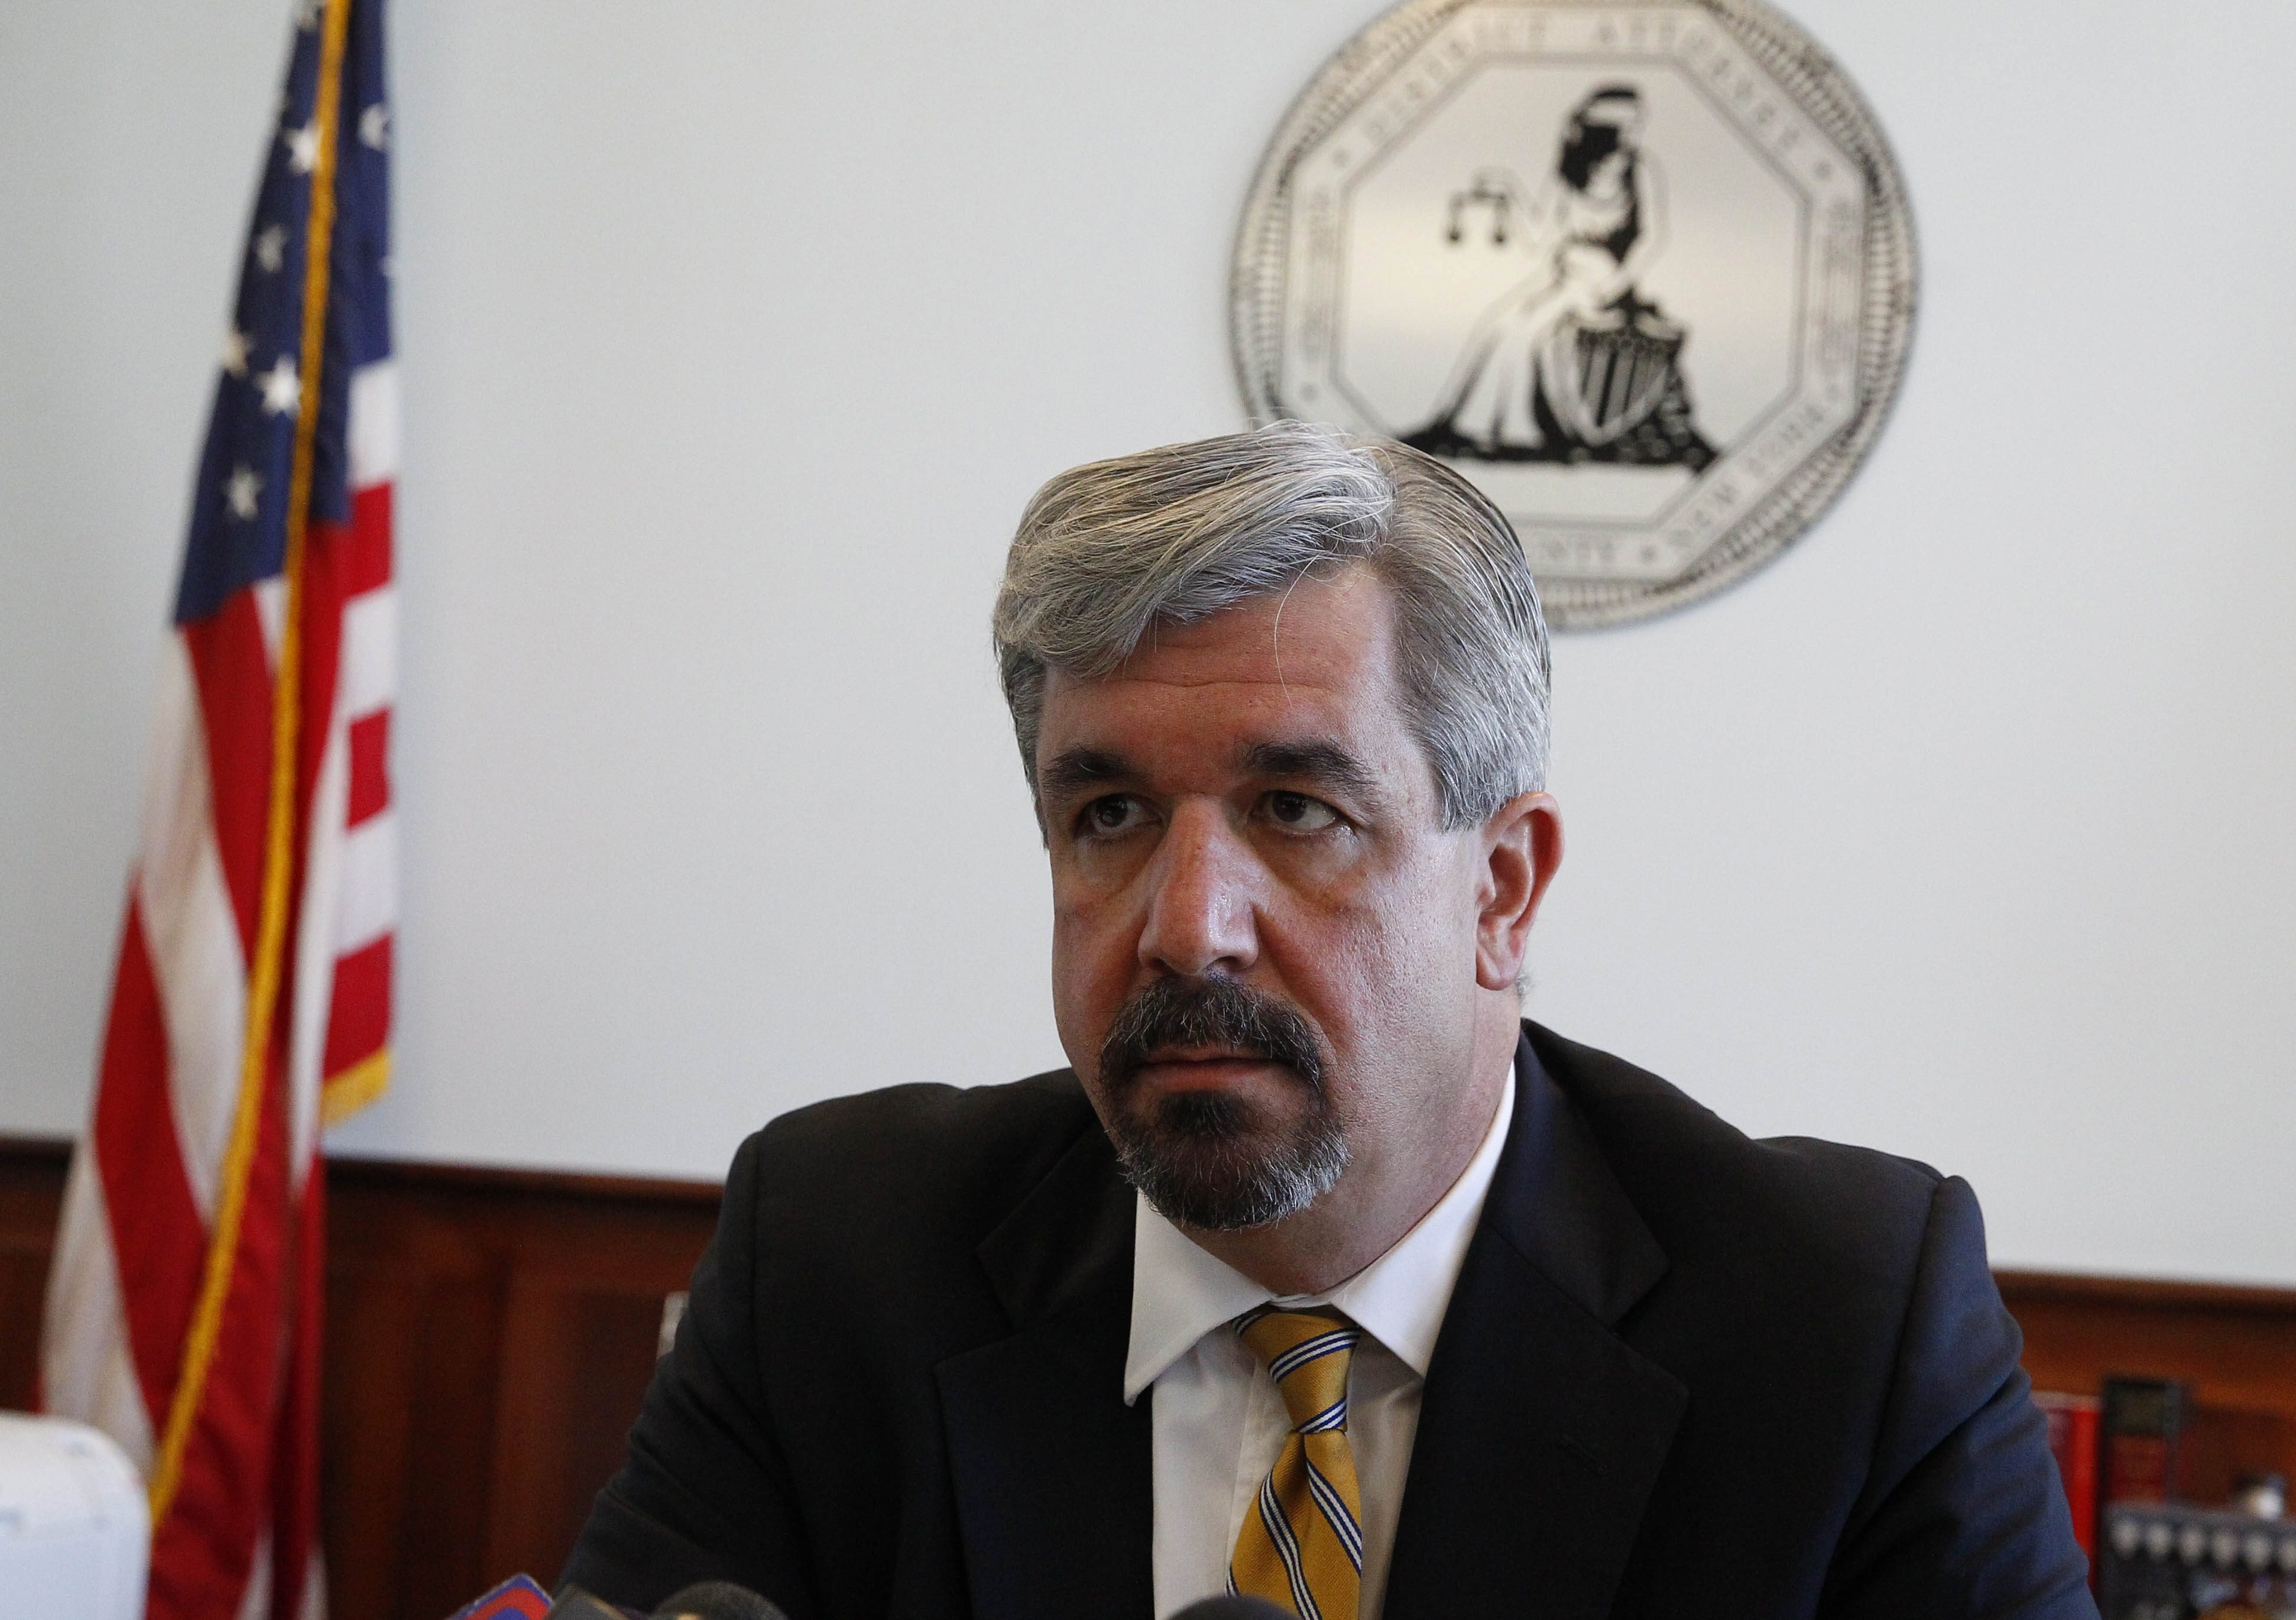 Erie County District Attorney Frank Sedita III revoked the authority of a Cheektowaga town prosecutor over a letter to the editor she wrote calling him 'overzealous' in his prosecution of a former councilman. (John Hickey / Buffalo News)